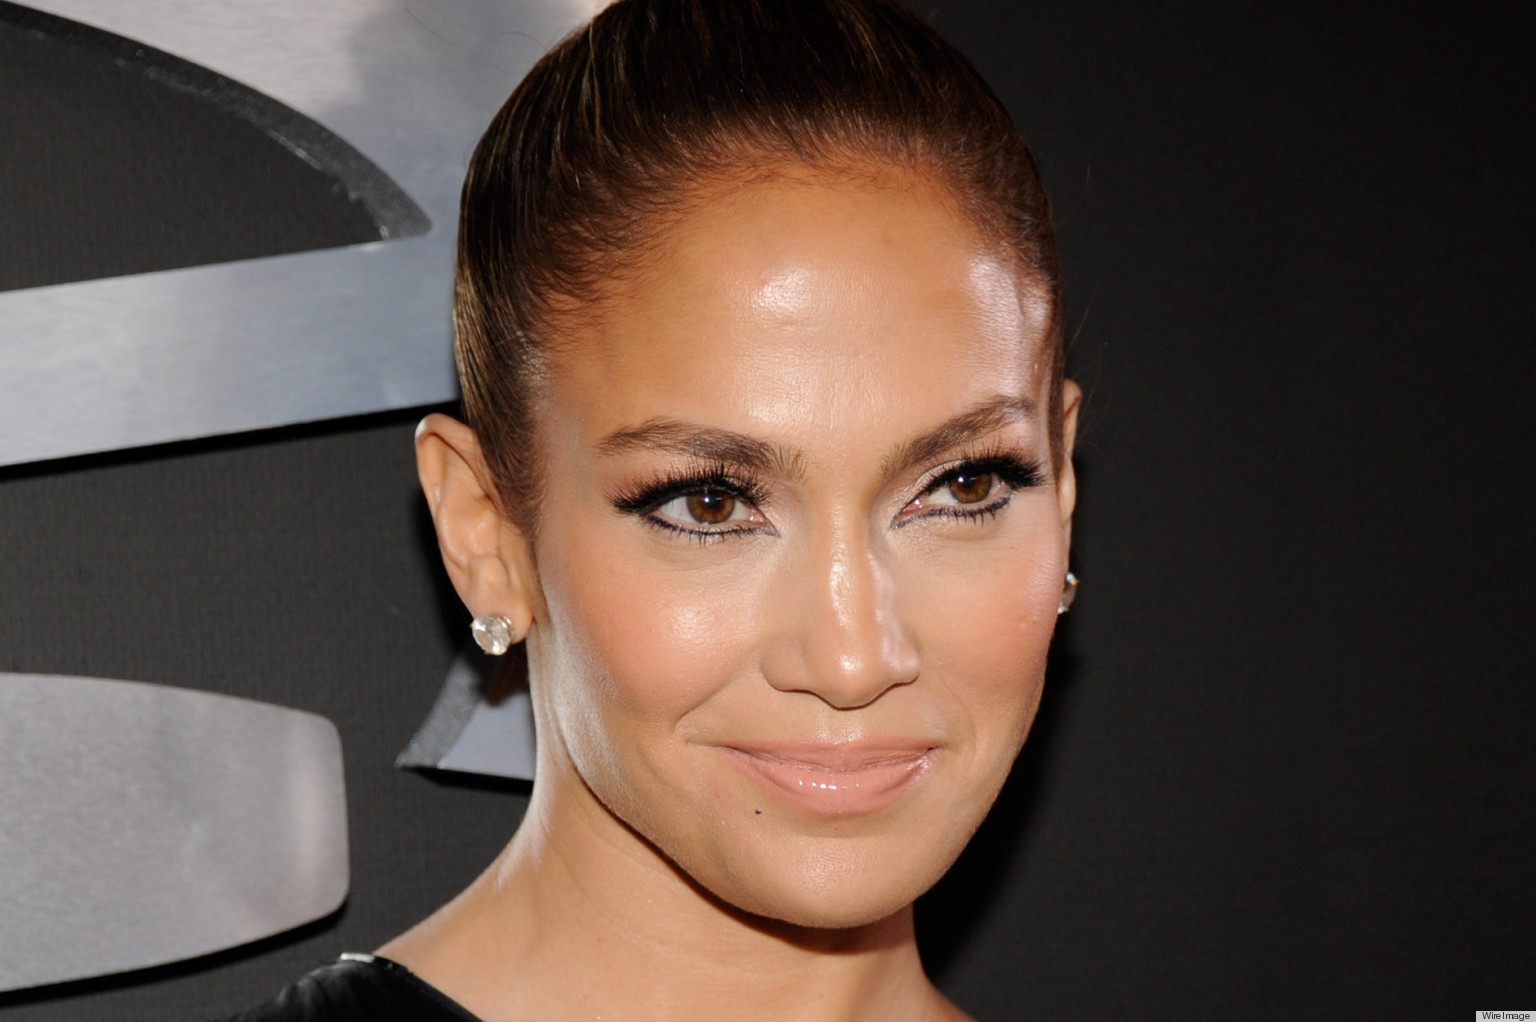 J. Lo Goes Simple With Her Makeup For The 2013 Grammys